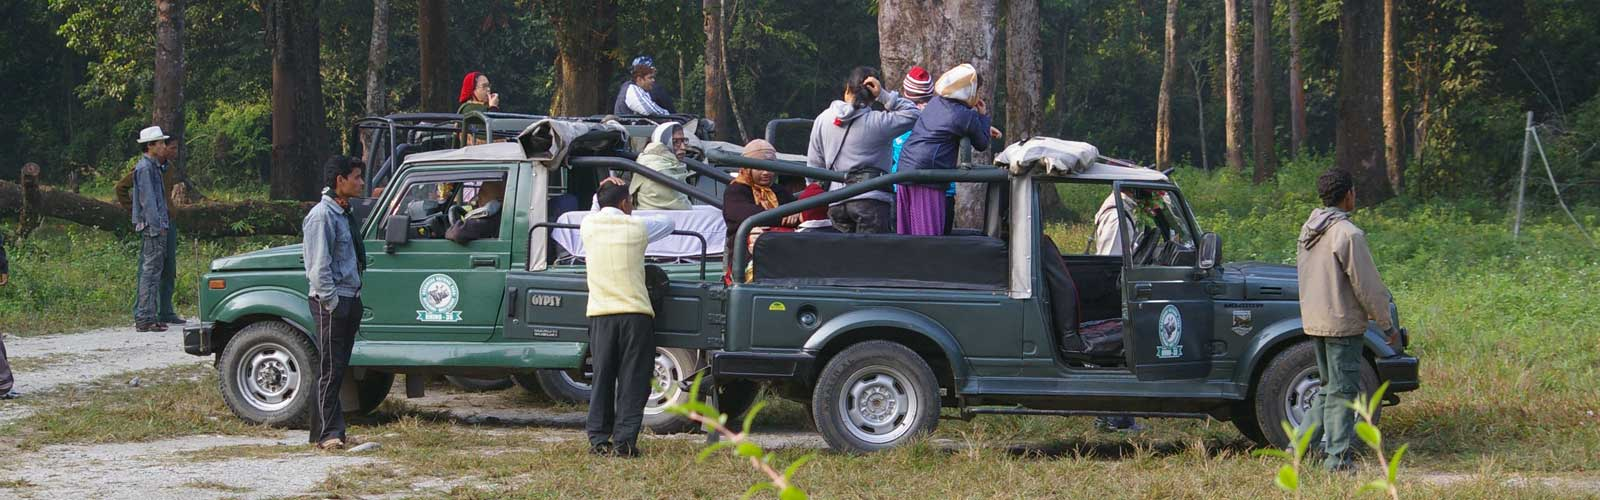 Jeep Safari in Jaldapara